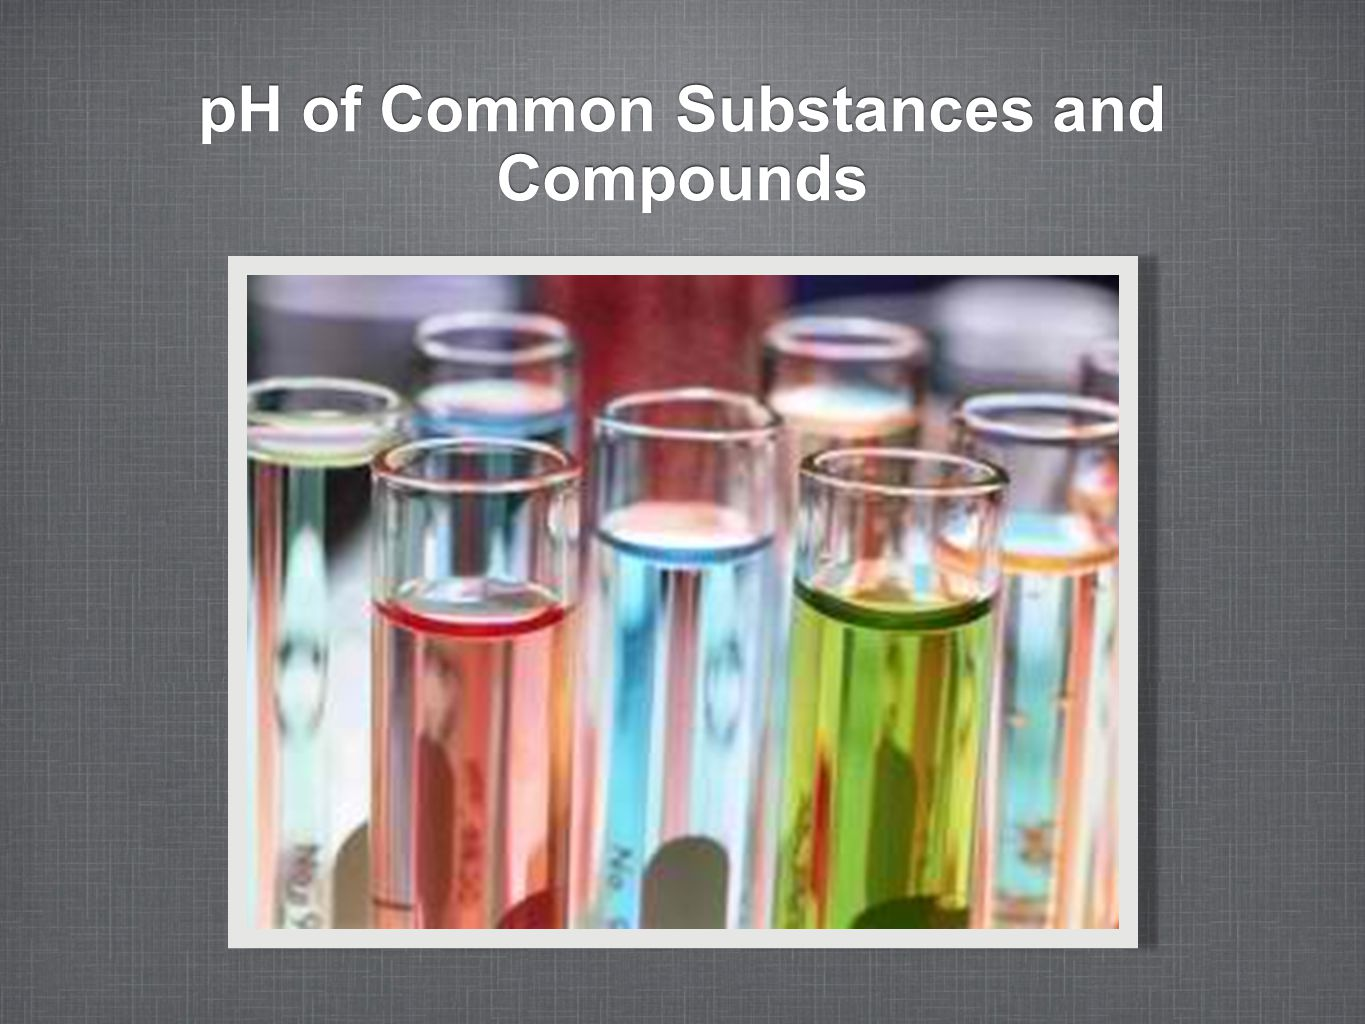 pH of Common Substances and Compounds